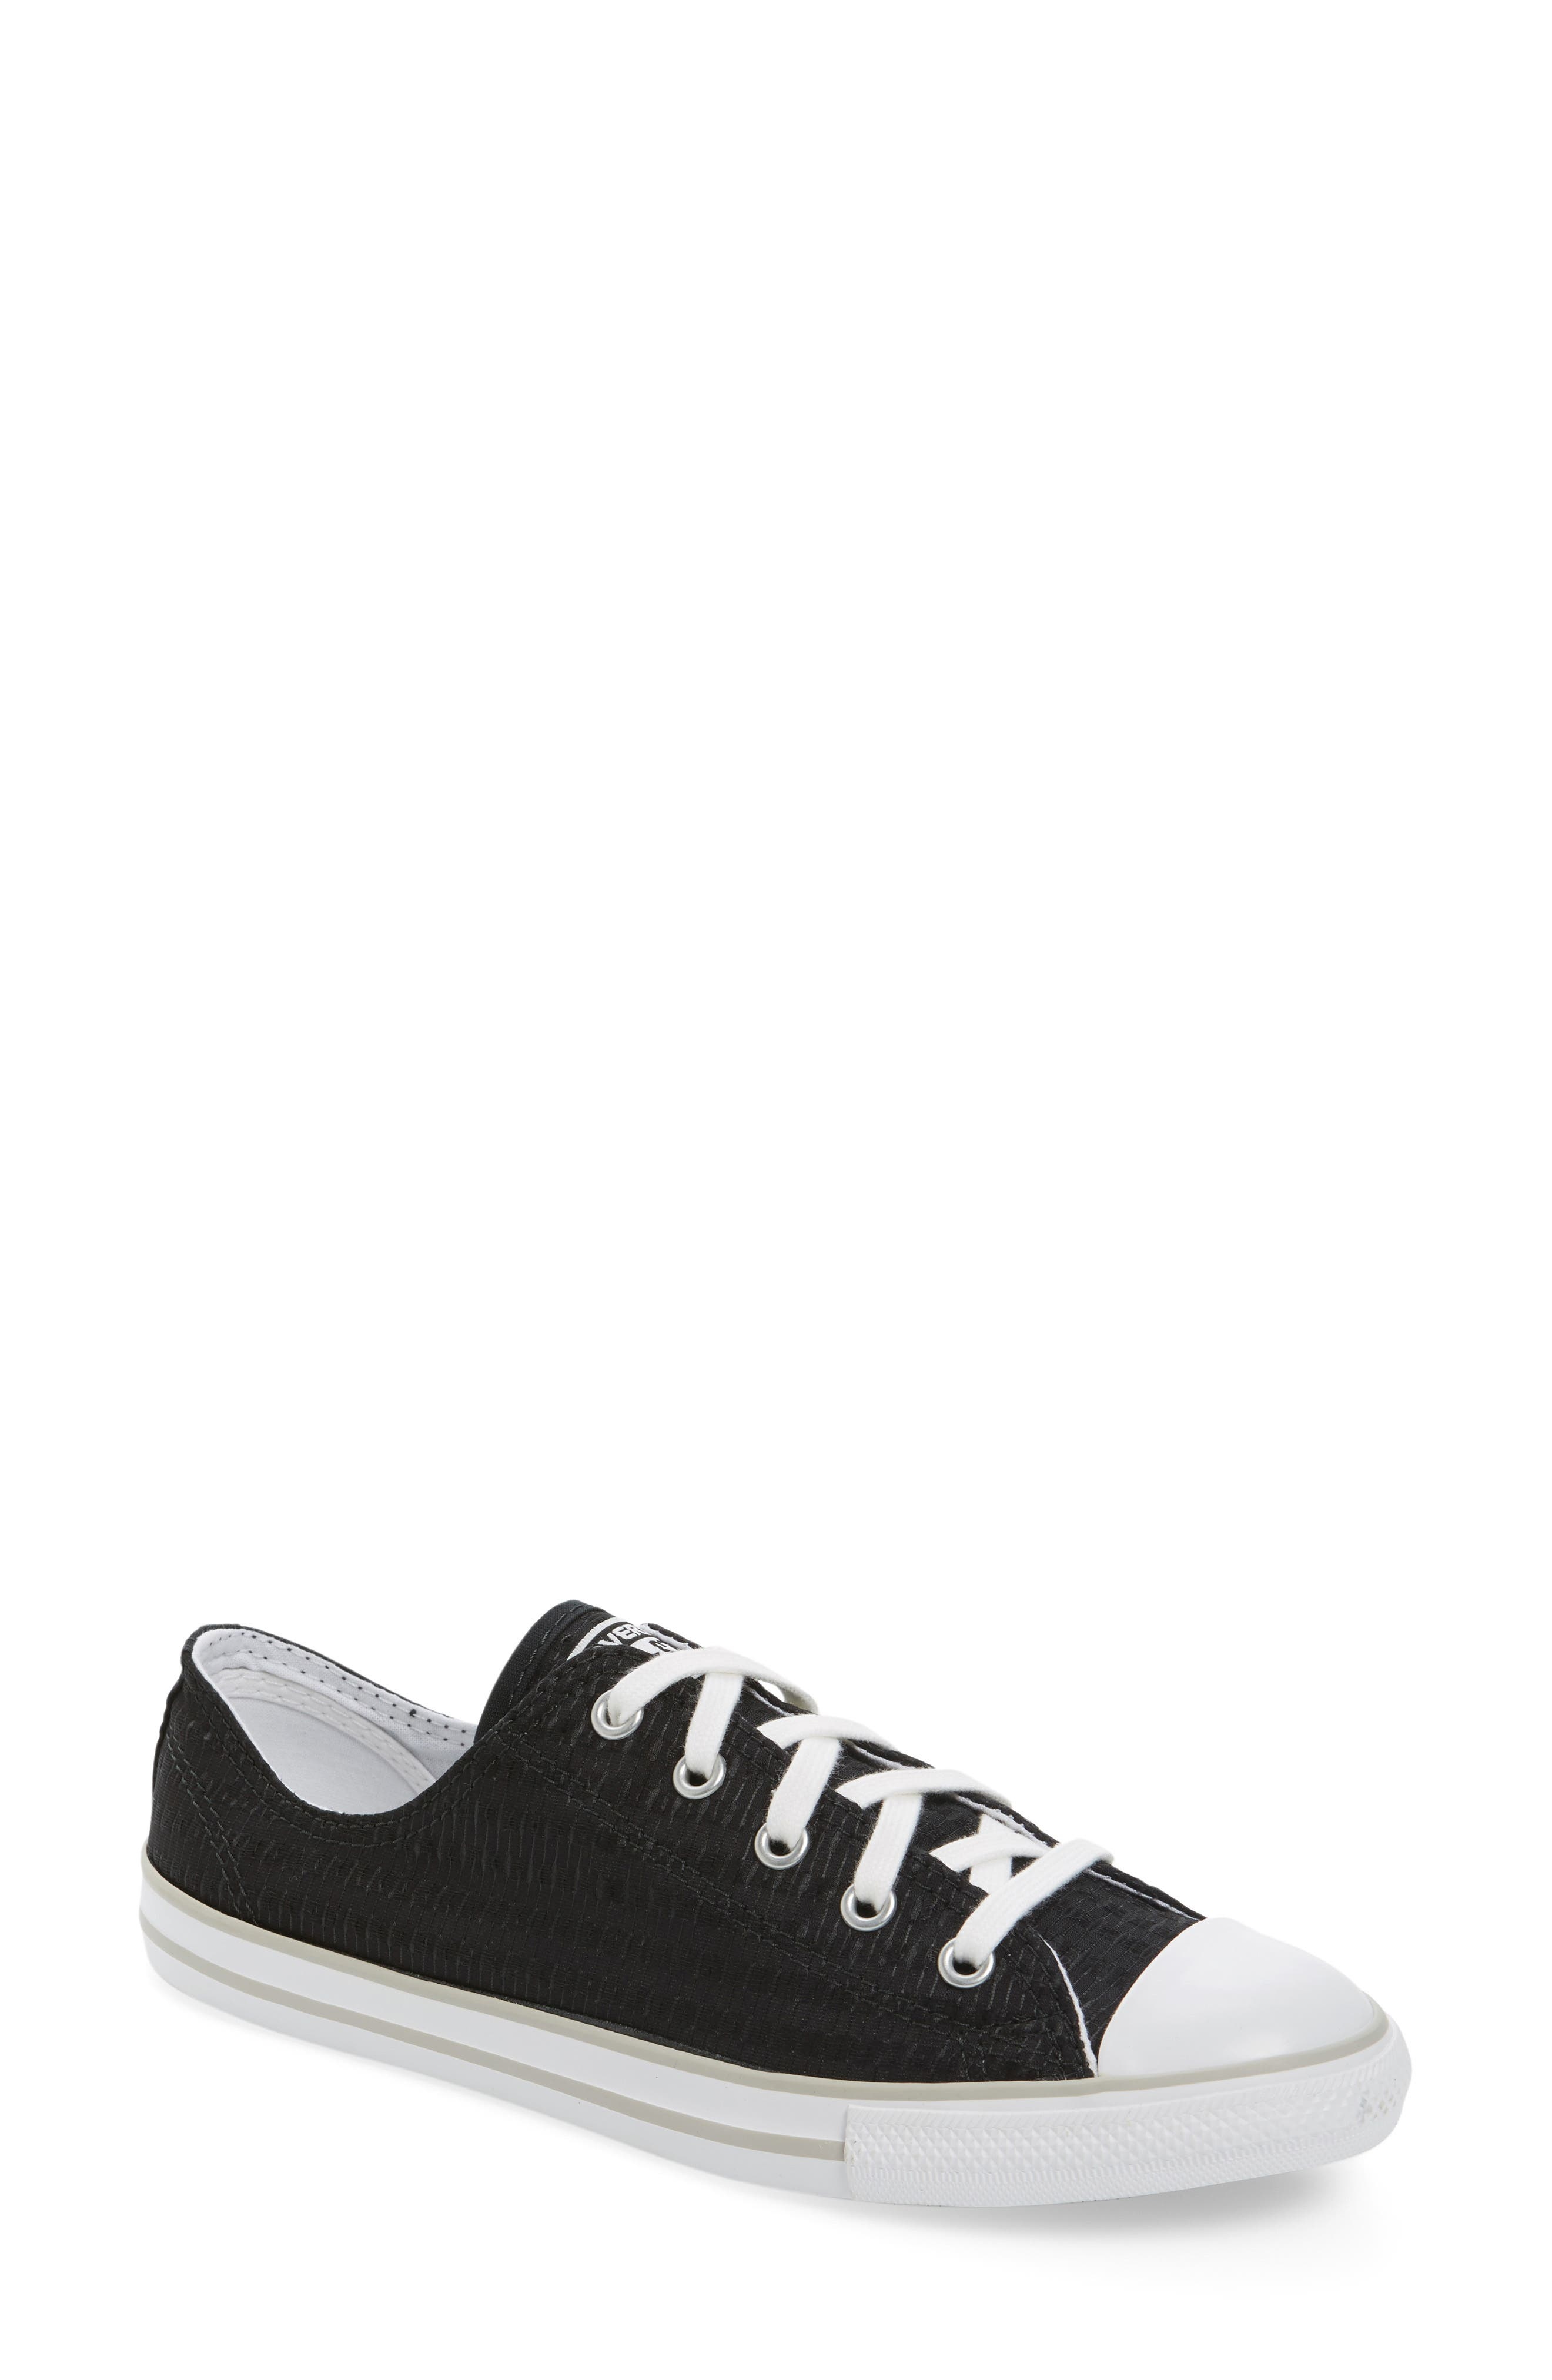 Alternate Image 1 Selected - Chuck Taylor® All Star® Dainty Low Top Sneaker (Women)